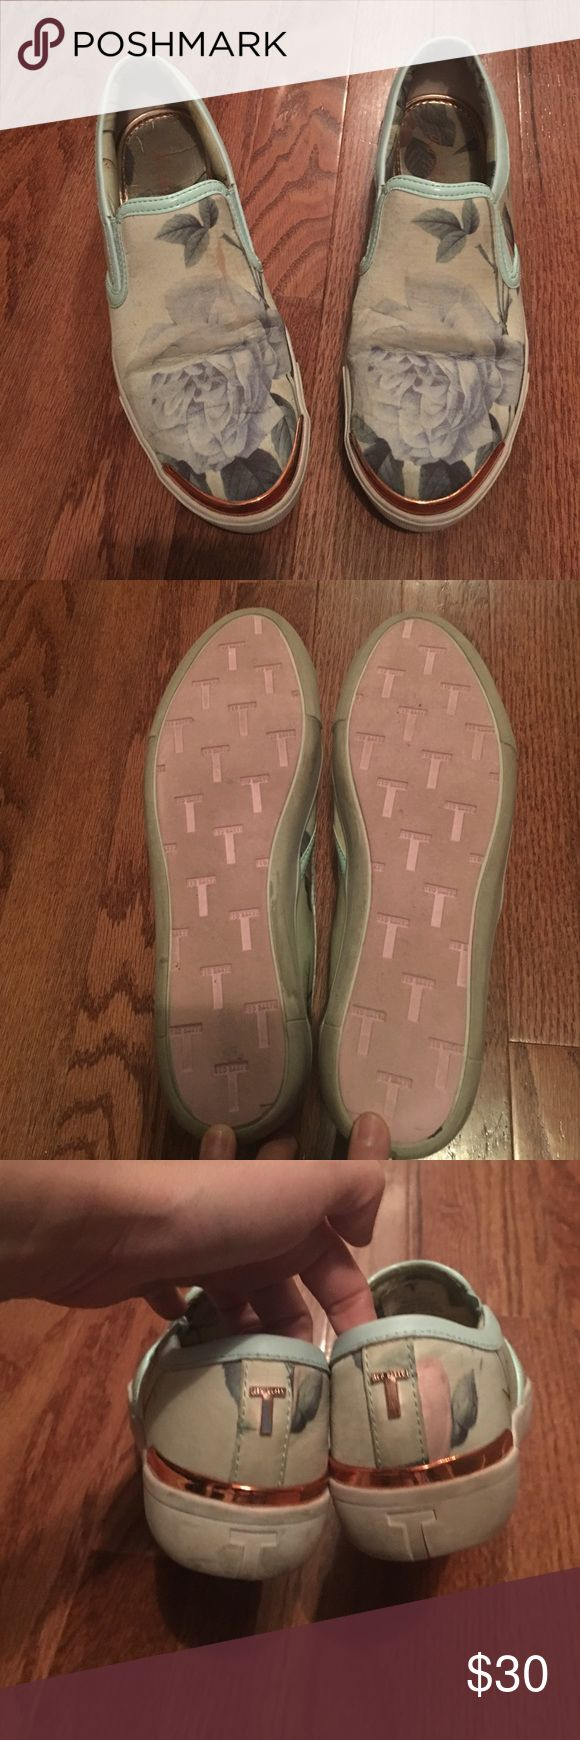 Ted baker used sneakers with copper detail size 7 Ted baker used sneakers with copper detail size 7. Tag says EU 38 US size 7 but I am usually a size 7.5 and these fit me Ted Baker London Shoes